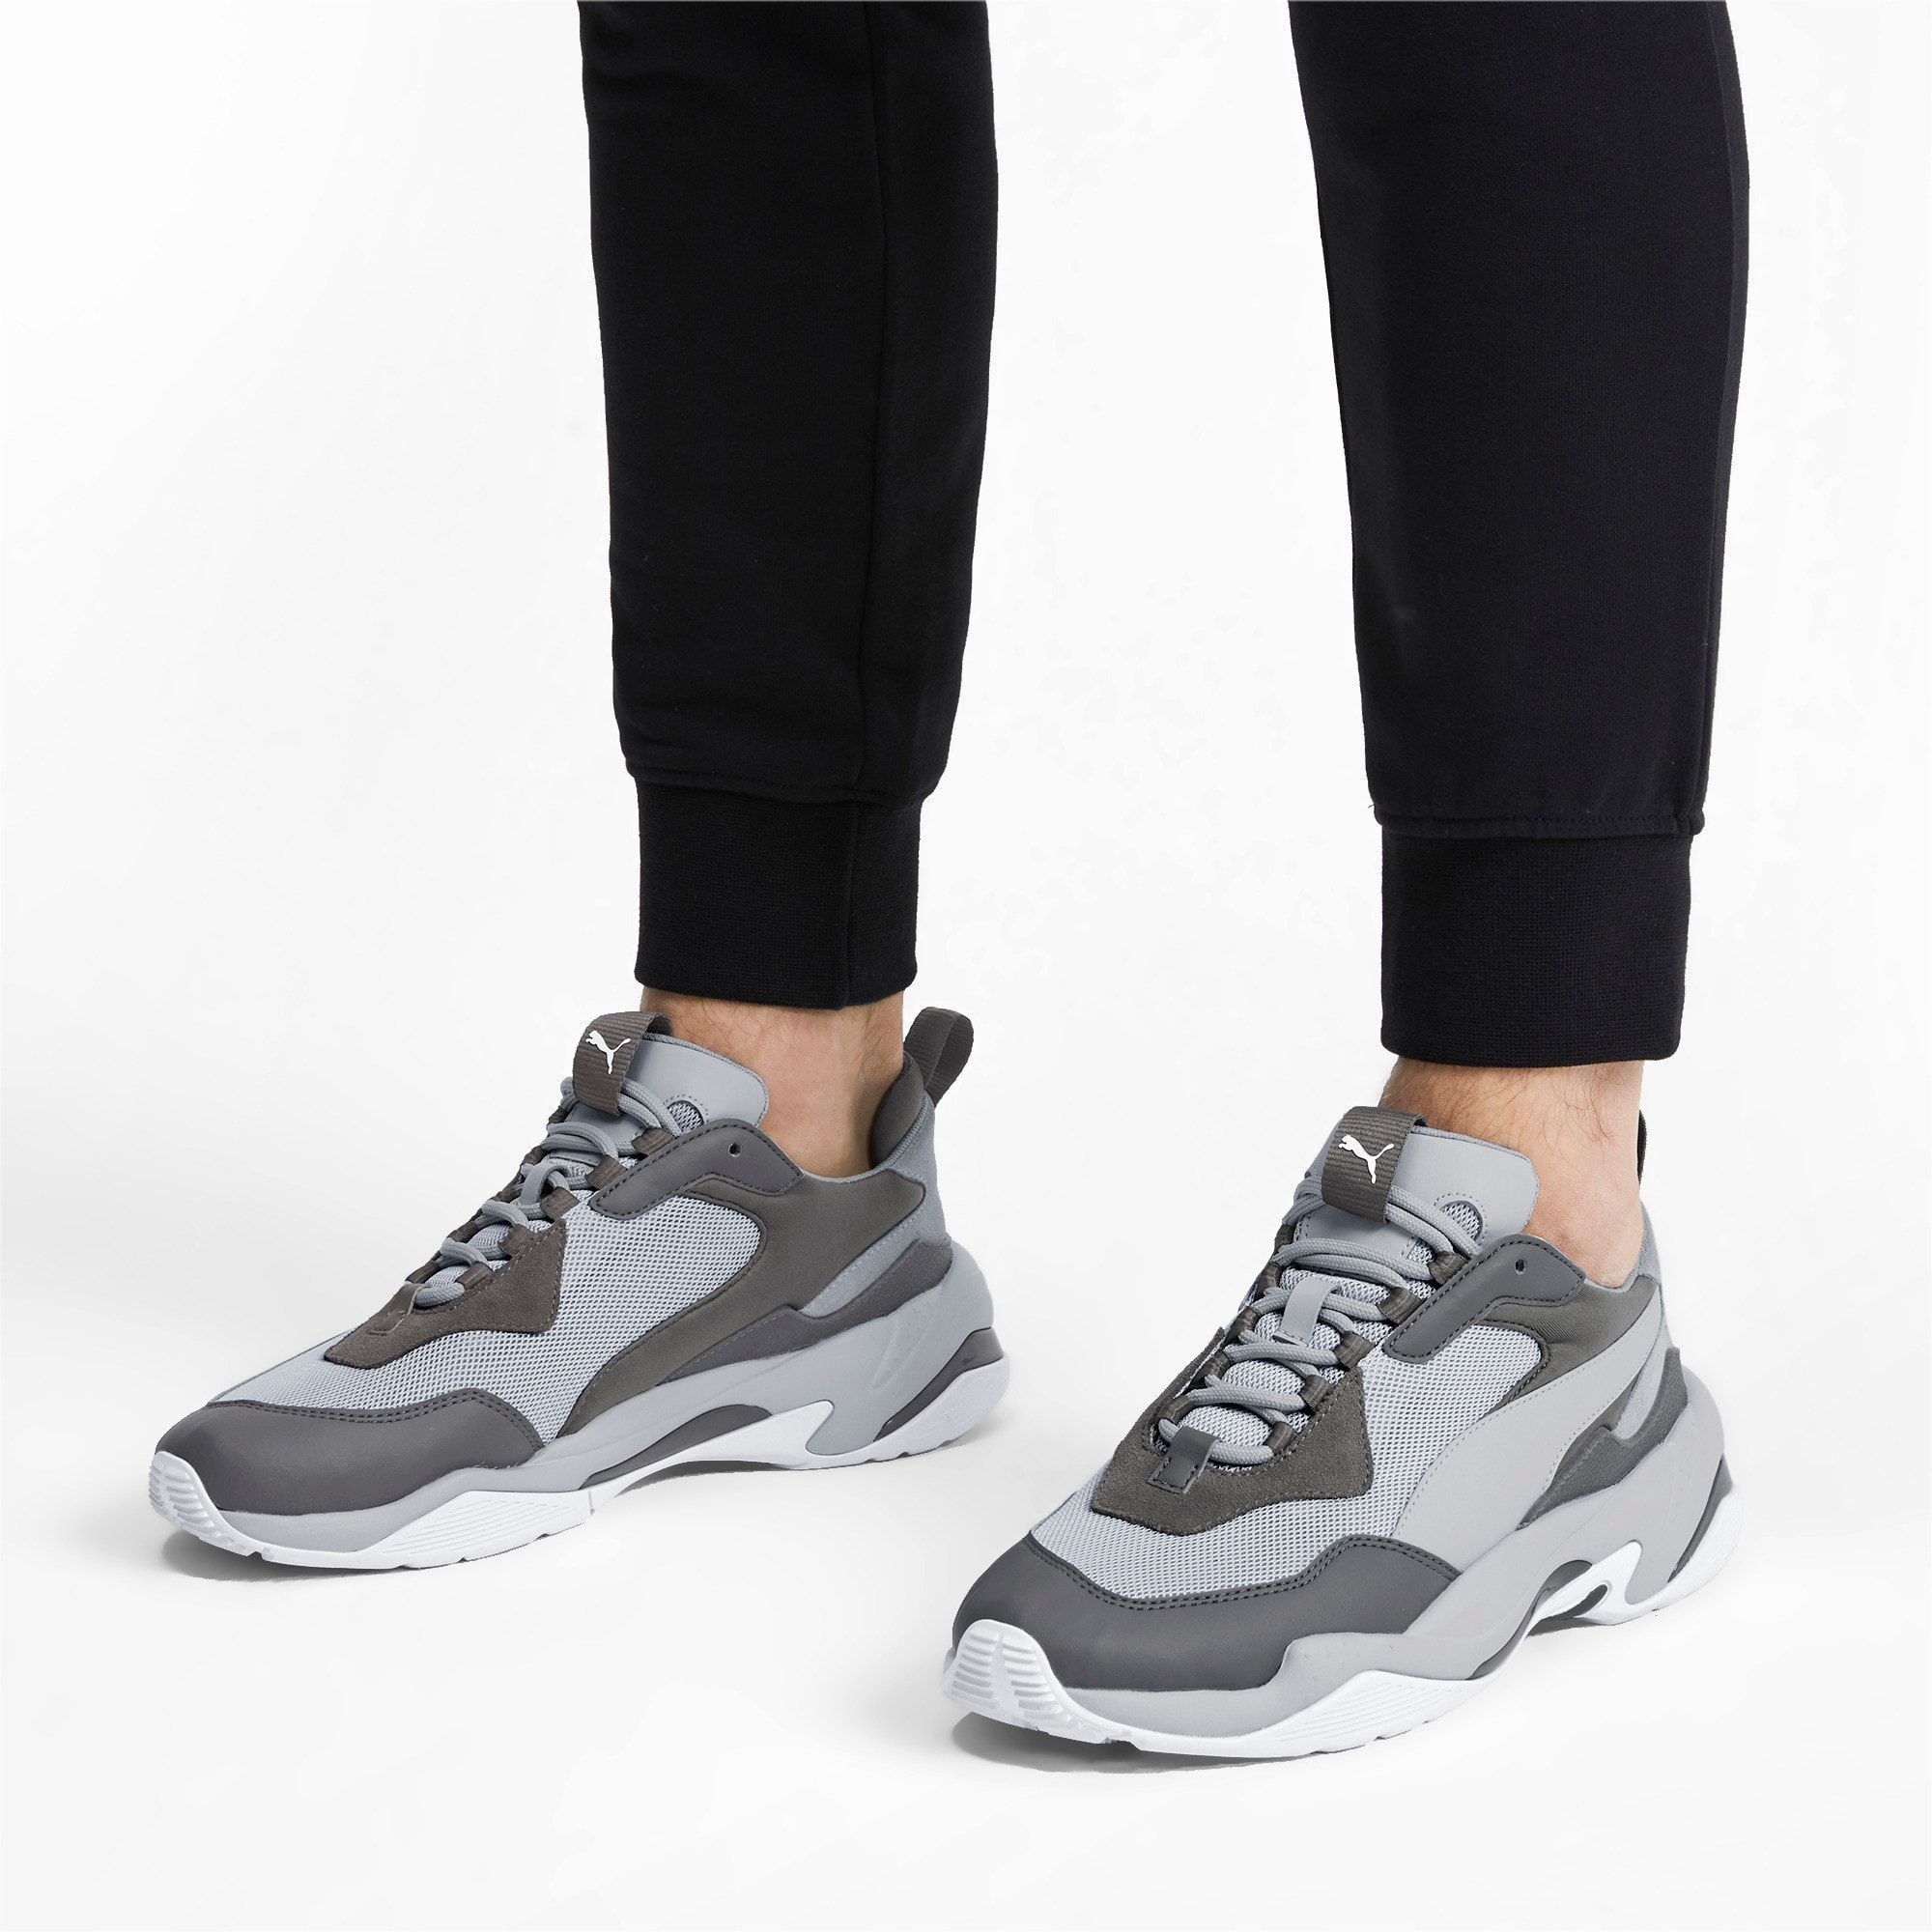 Thunder Fashion 2.0 Trainers | High Rise-CASTLEROCK | PUMA Thunder Collection | PUMA United Kingdom -  Men's PUMA Thunder Fashion 2.0 Trainers in Grey size 10.5  - #90sRunwayFashion #collection #Fashion #high #KINGDOM #Puma #RiseCASTLEROCK #RunwayFashion2020 #RunwayFashionaesthetic #RunwayFashionchanel #RunwayFashioncrazy #RunwayFashiondior #RunwayFashiondresses #RunwayFashionvogue #RunwayFashionwomen #Thunder #Trainers #United